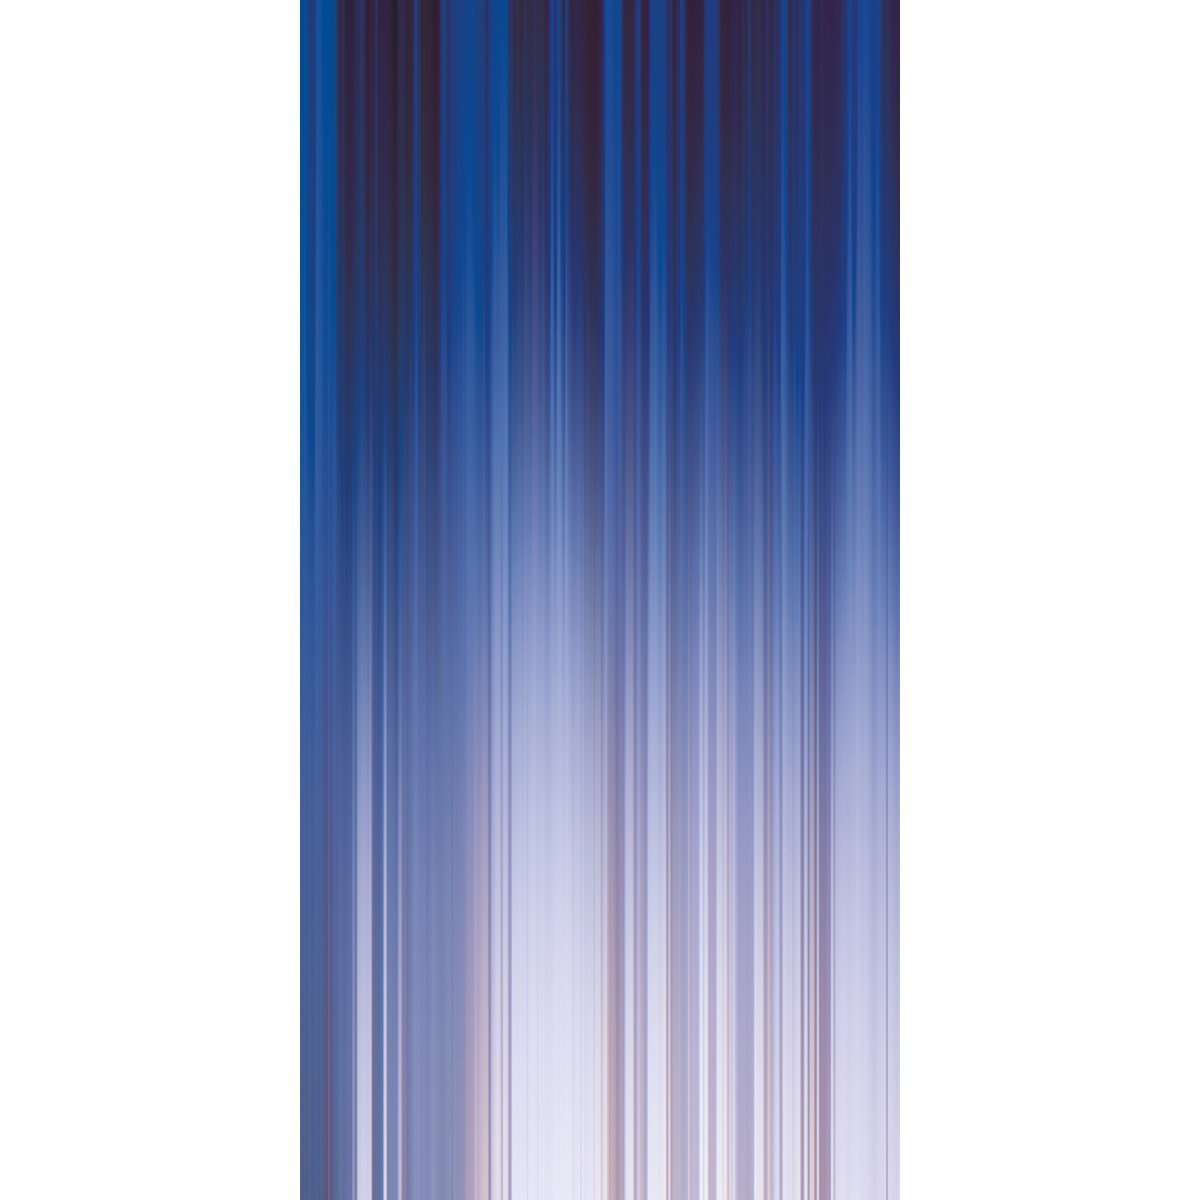 Wall Acoustics Panel 6 Muffle Abstract Mural - Kinetic Blue Panel 6